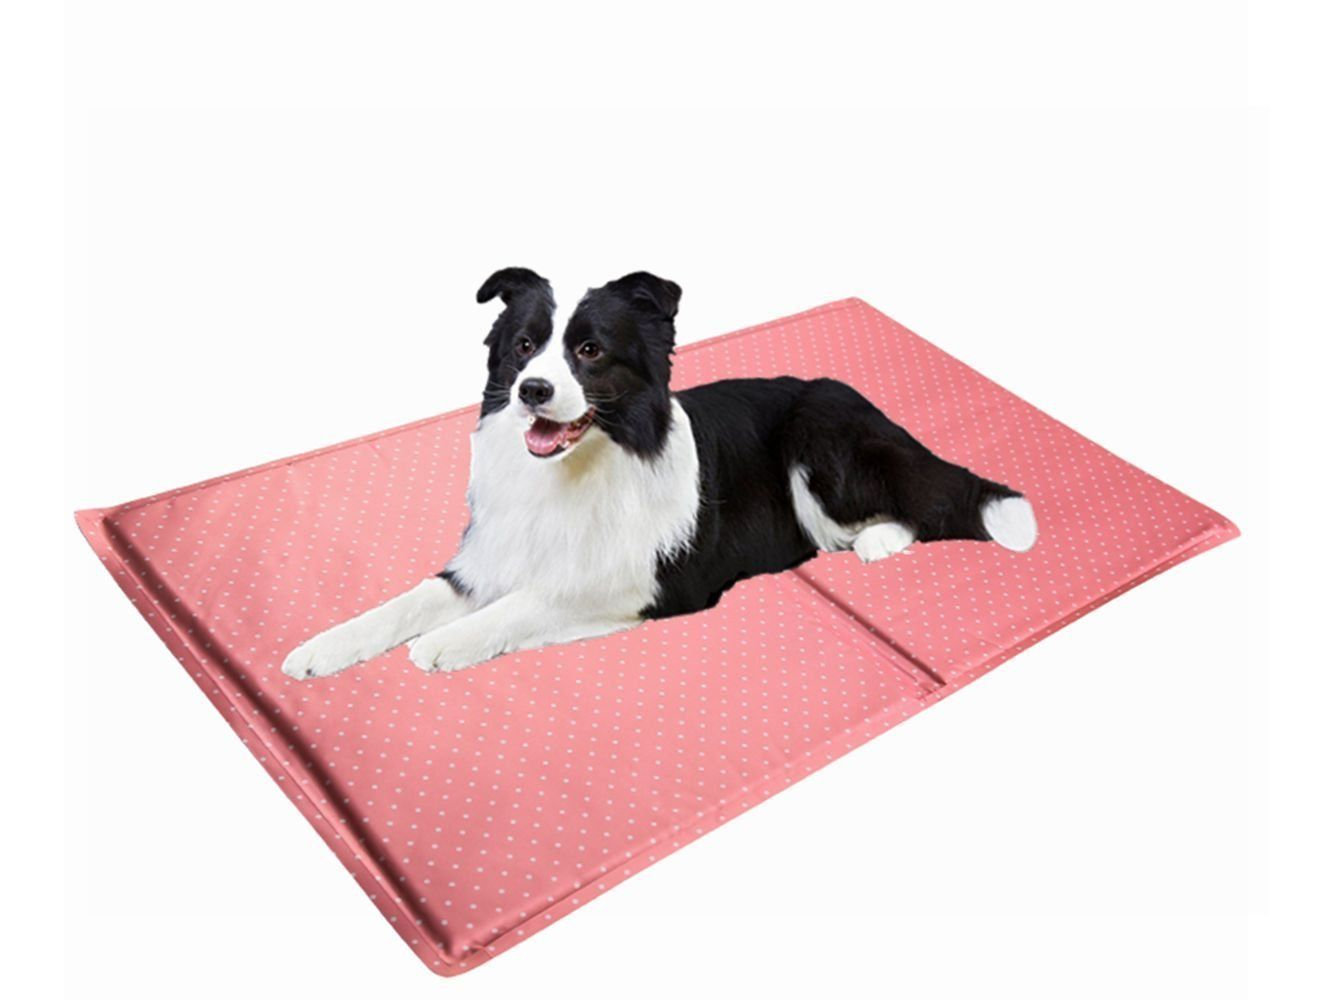 Elite Self Cooling Gel Ice Pad Mat Dog Cat Beds Beautiful Wave Dot Design Pet Sleeping Cooling Mat And People Seat Pillow Co Cat Beds And Furniture Ice P